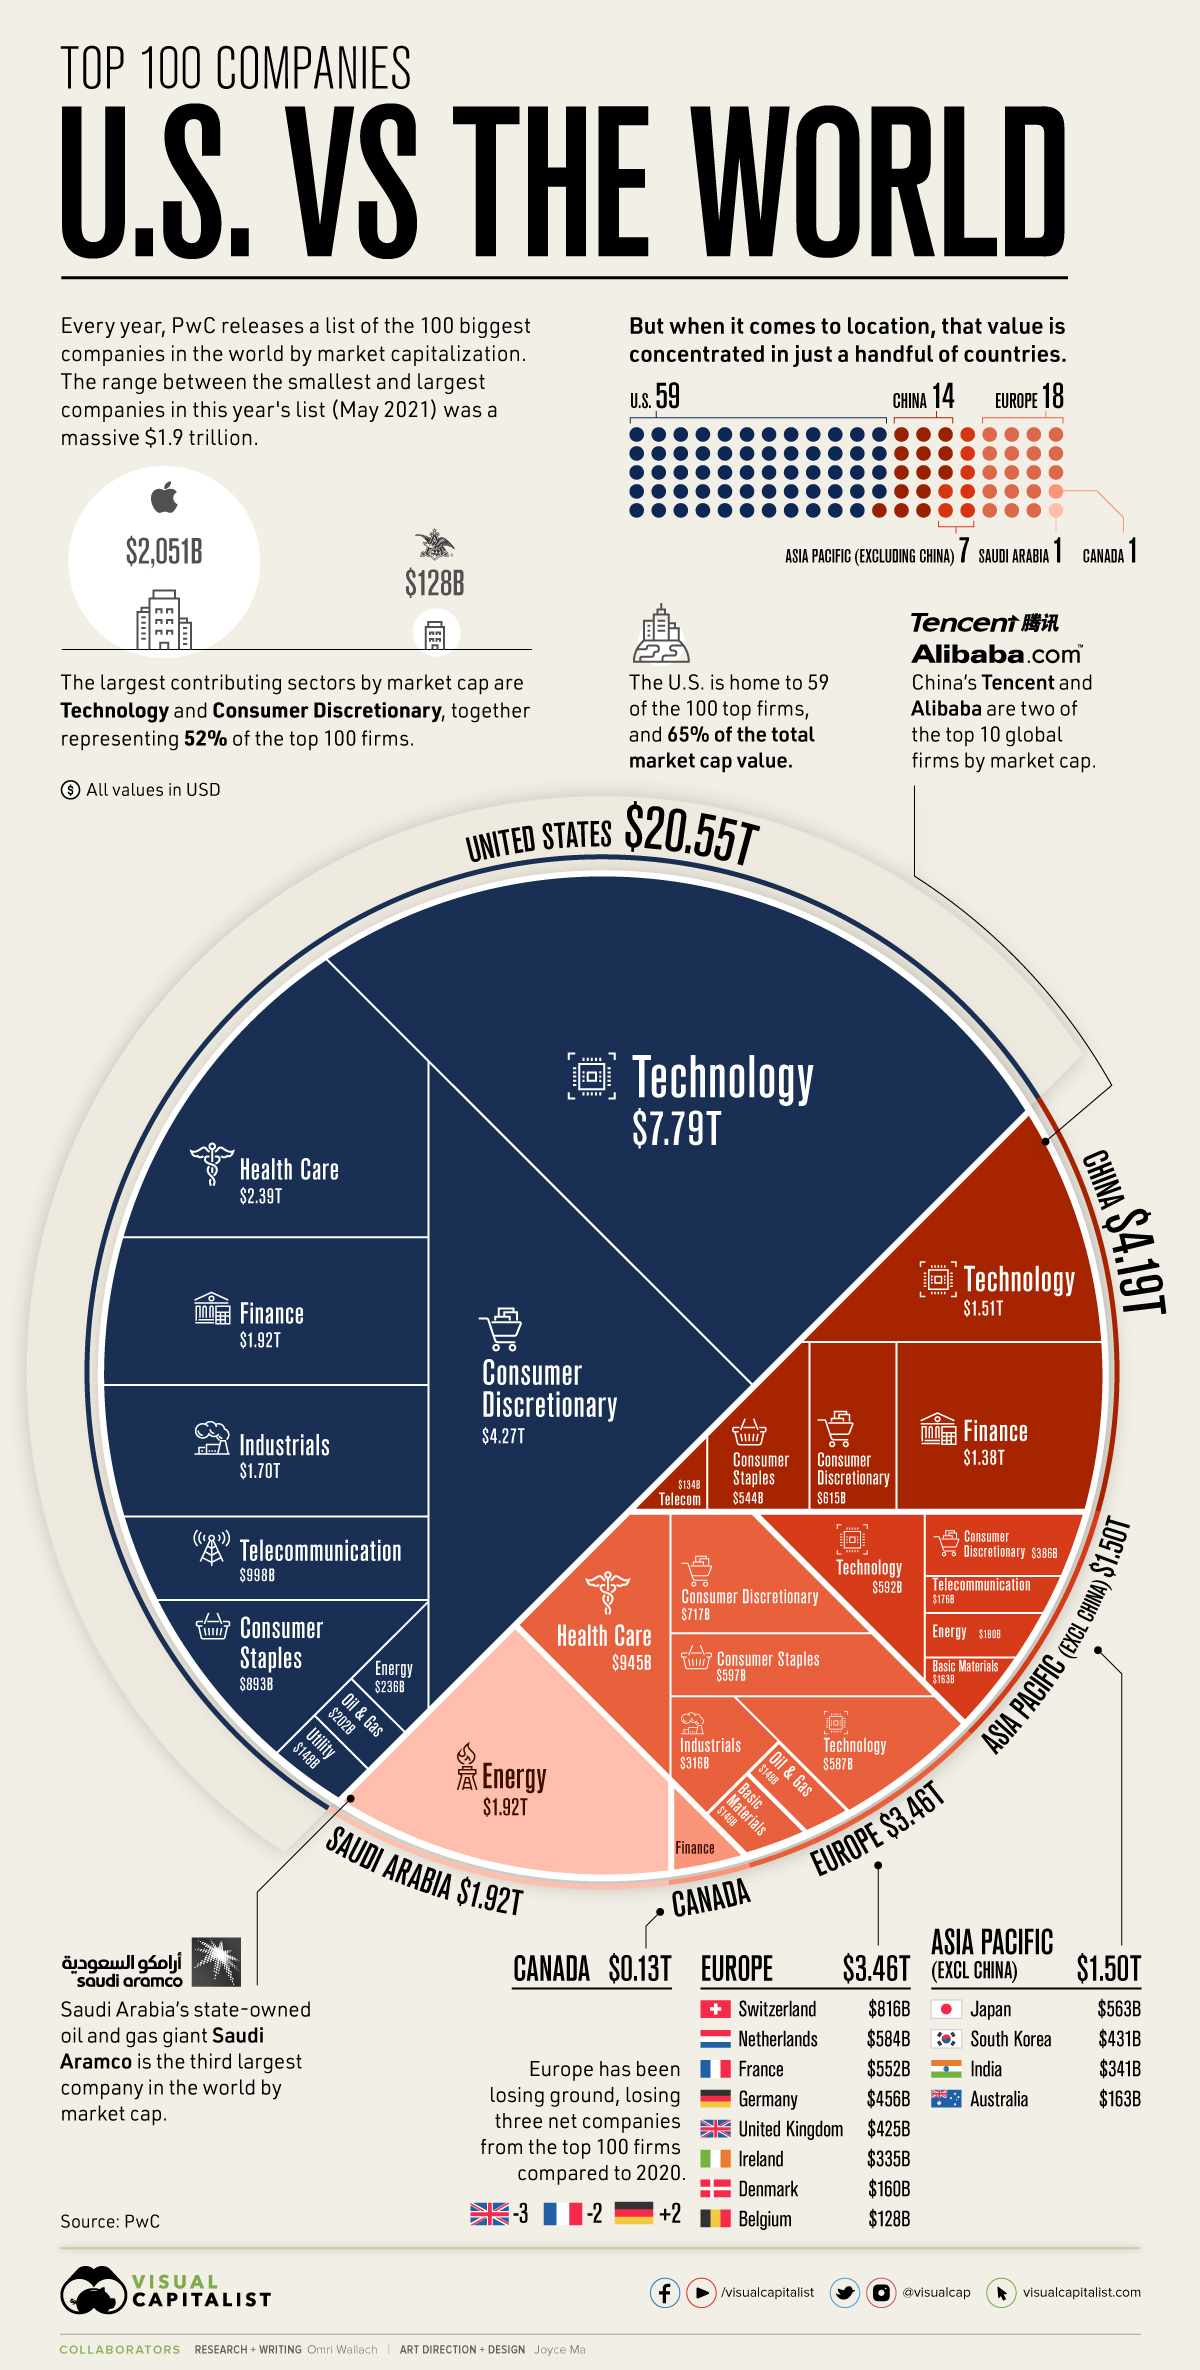 Top 100 Companies of the World vs US